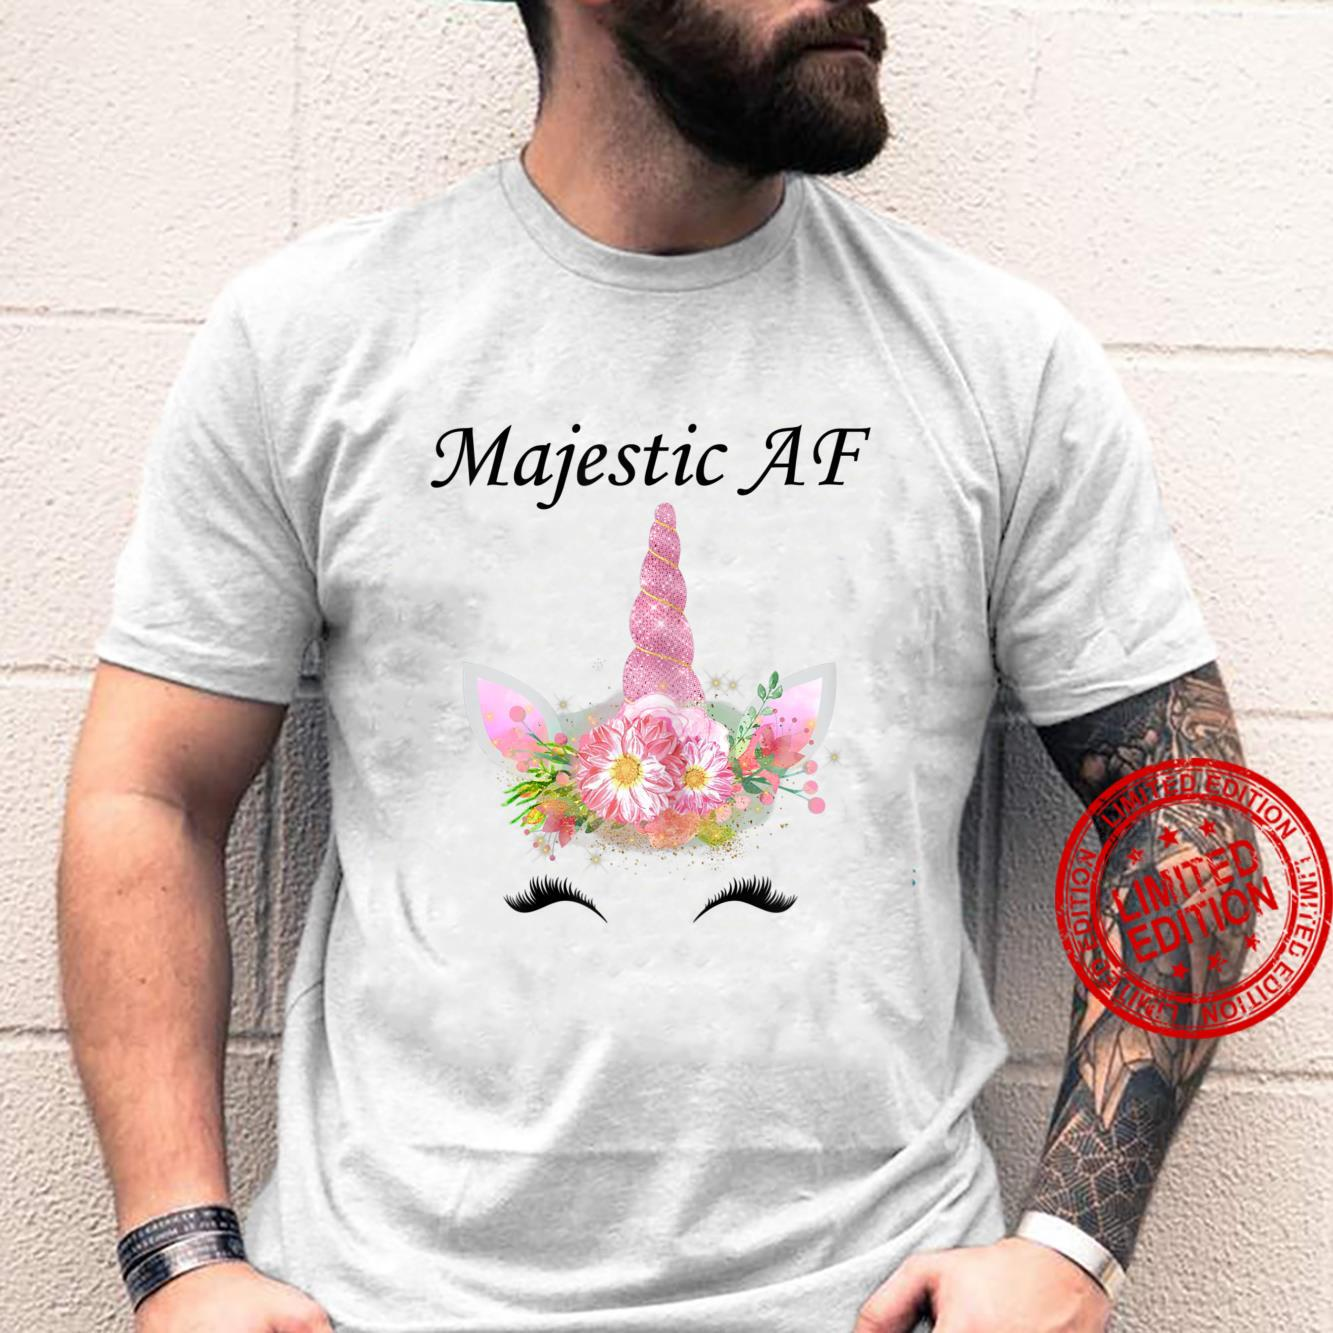 Womens Majestic AF Shirt,Magical Cute Unicorn Face Pink Floral Shirt